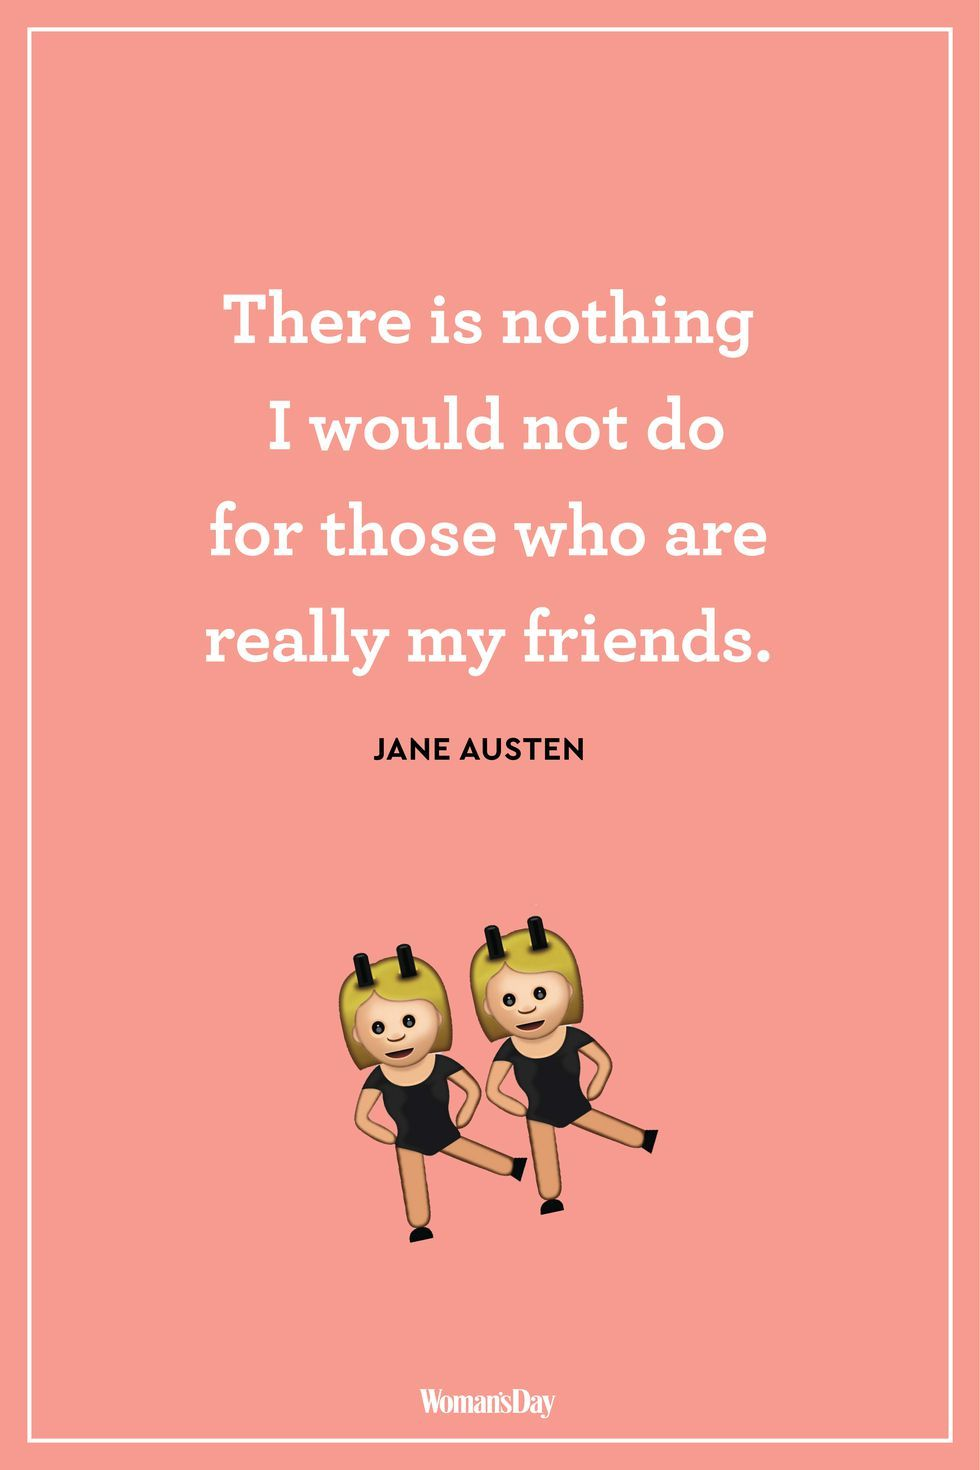 15 Best Friend Quotes Every Woman Needs To Share With Her